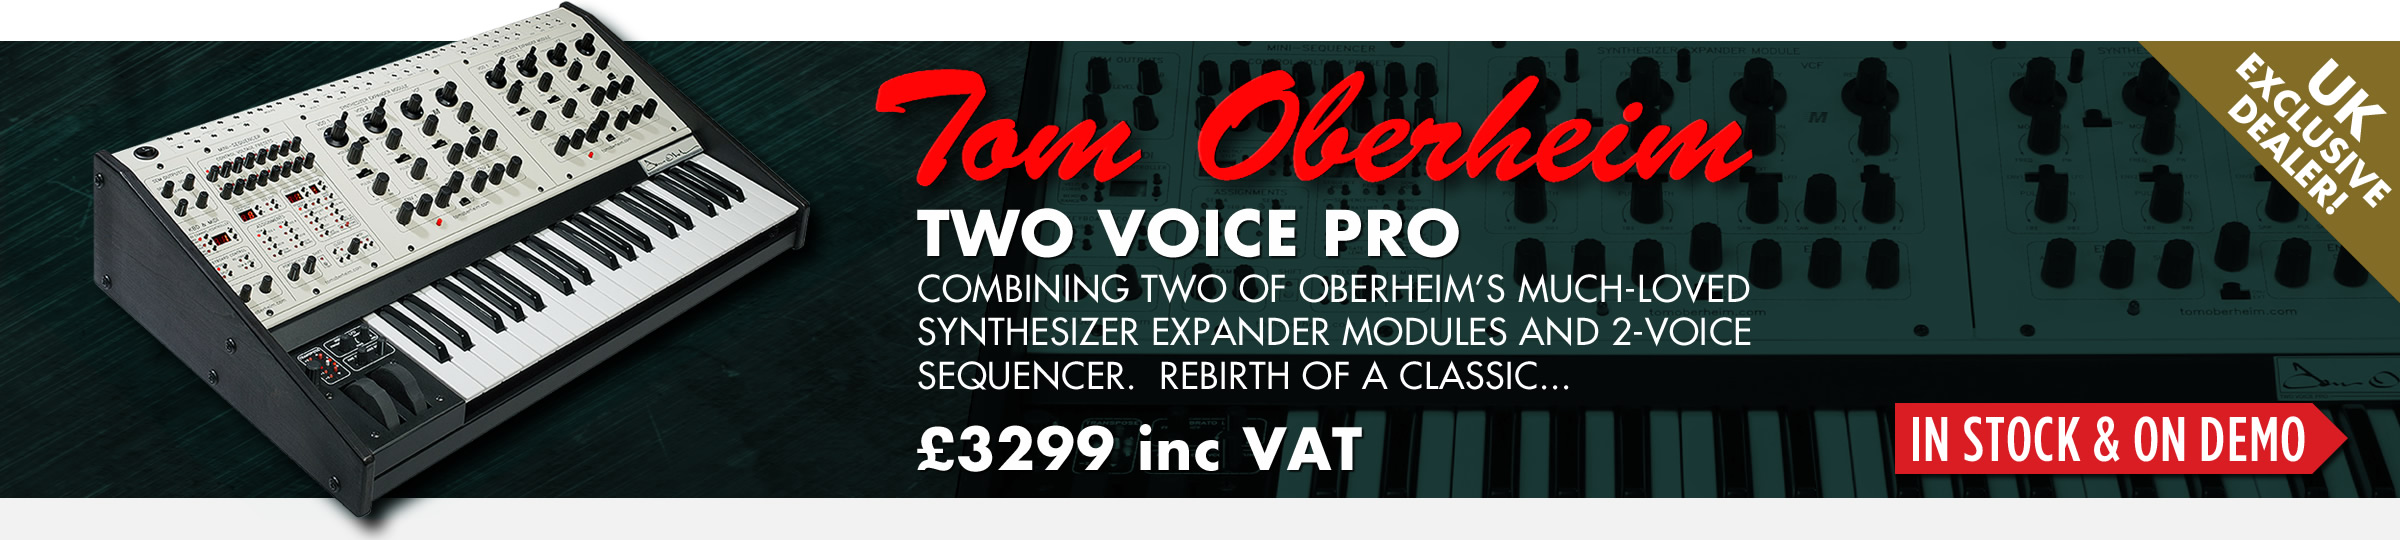 Tom Oberheim Two Voice Pro